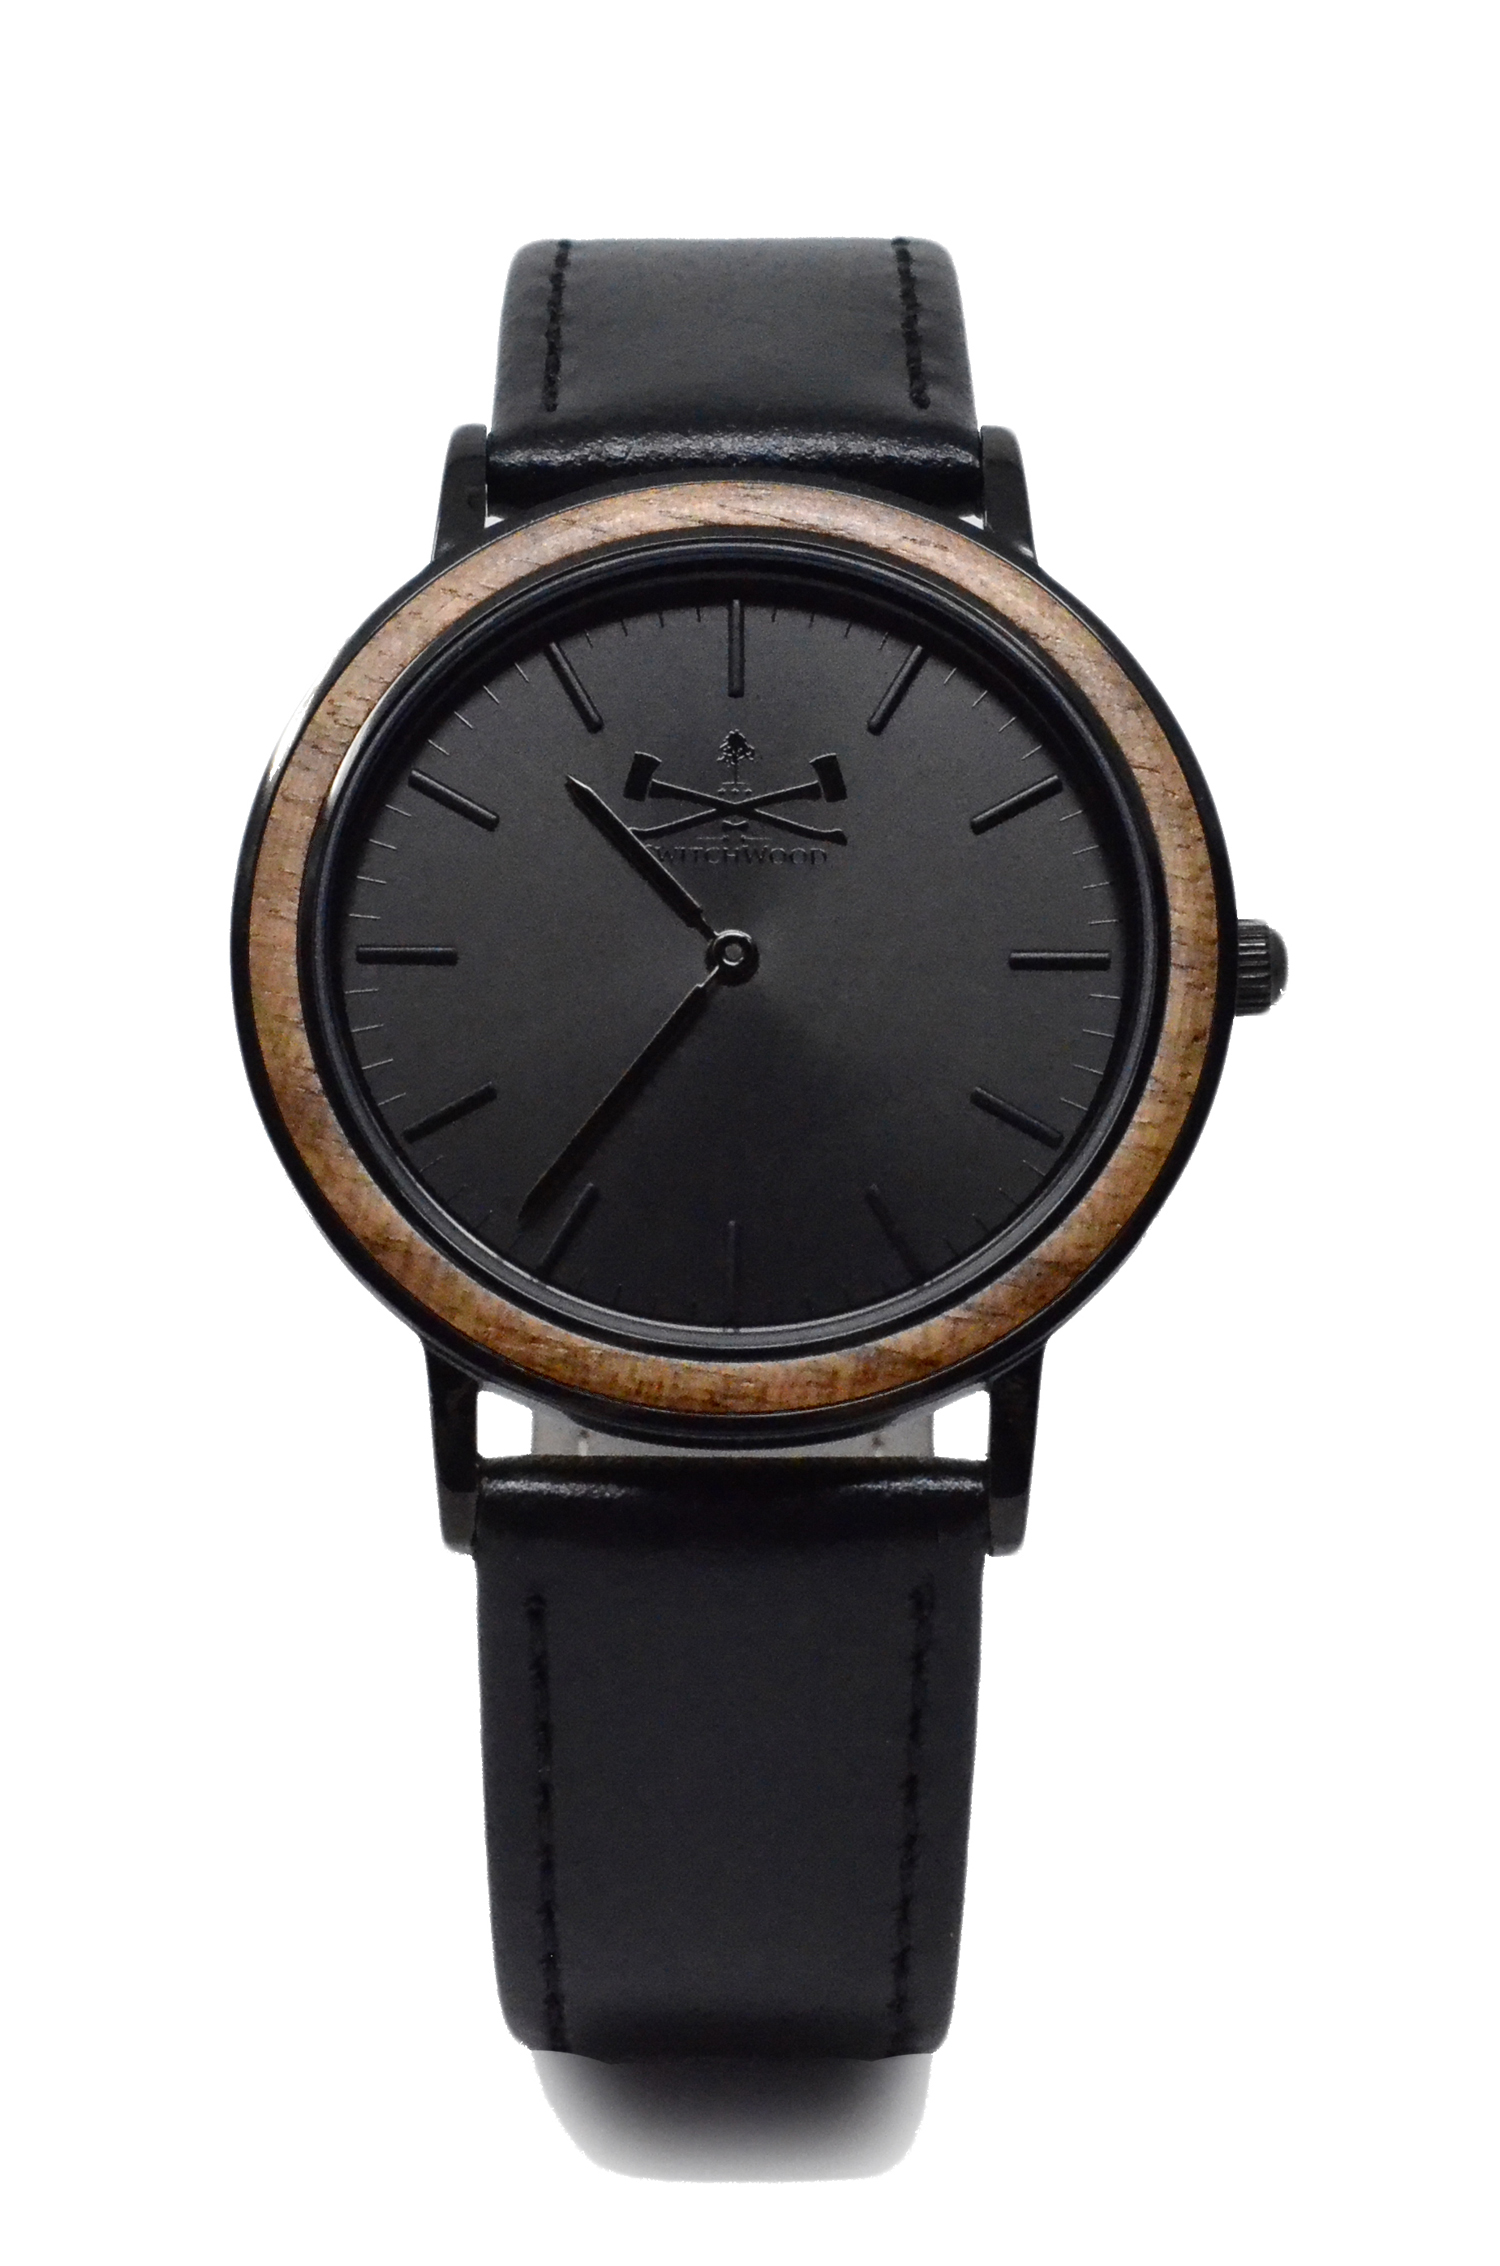 The Spartan Wooden Watch